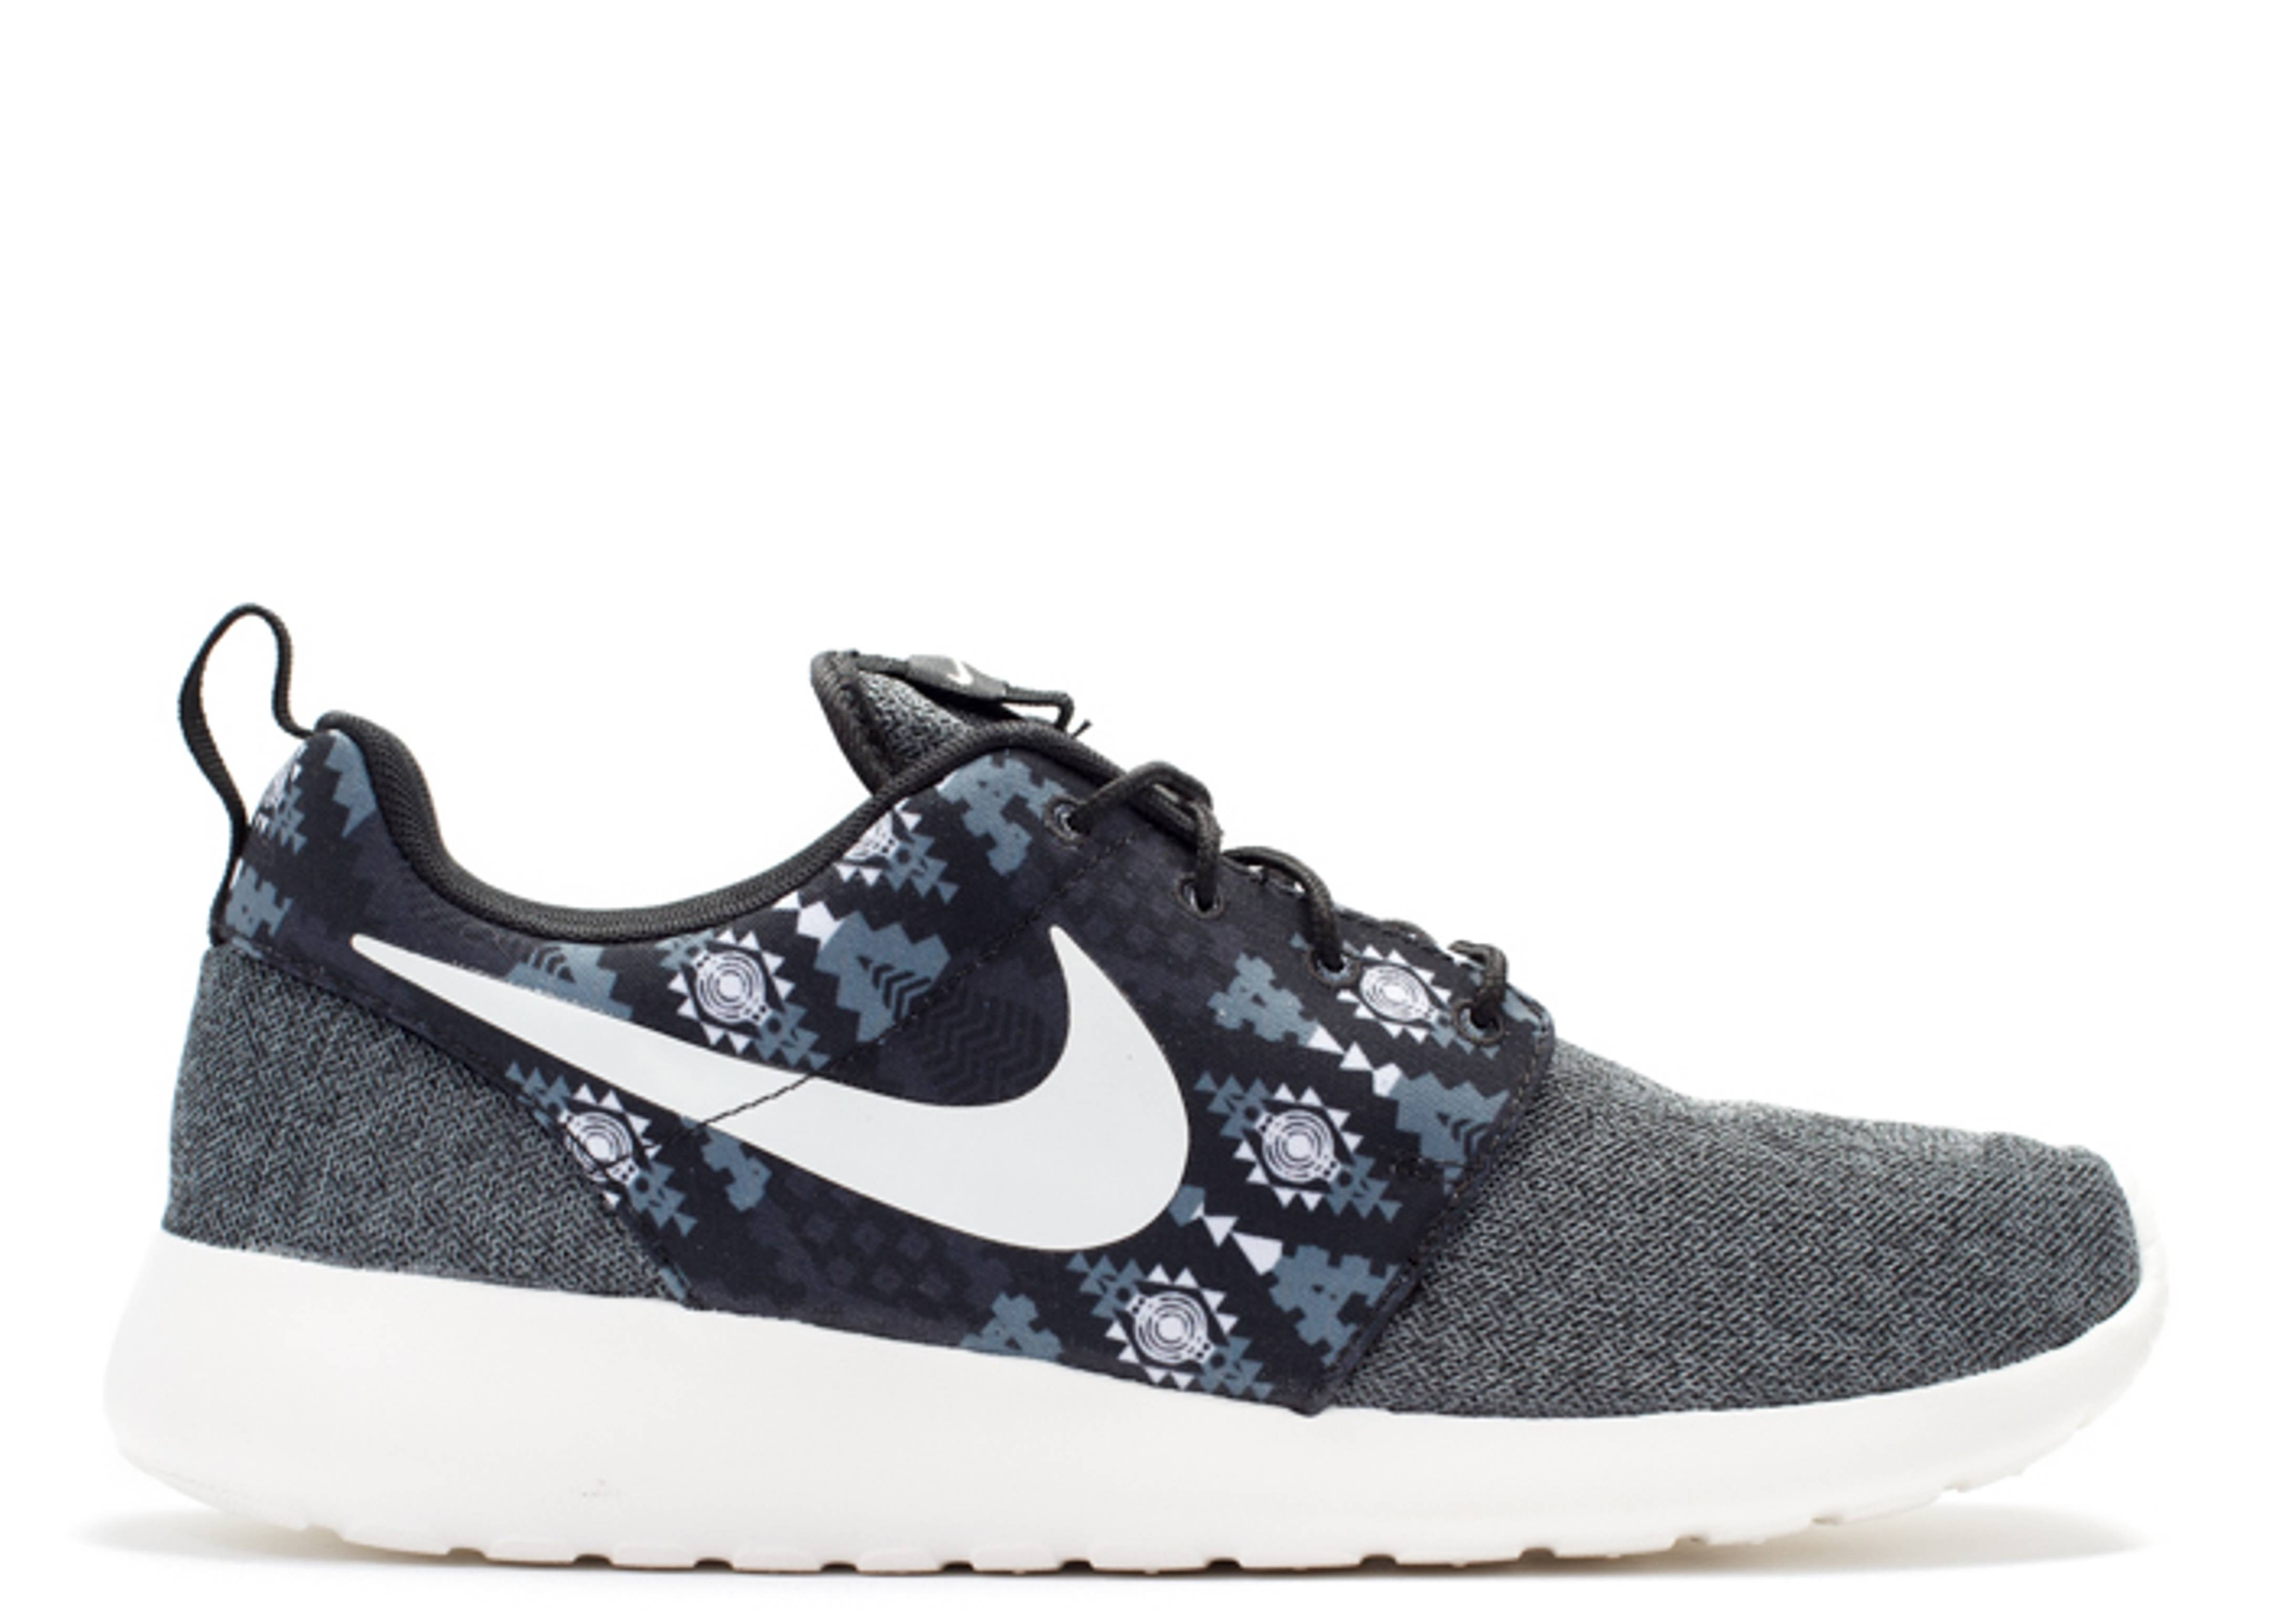 low priced 5e98a 3f2c7 Roshe One Print - Nike - 655206 012 - black sail-anthracite-cl grey    Flight Club